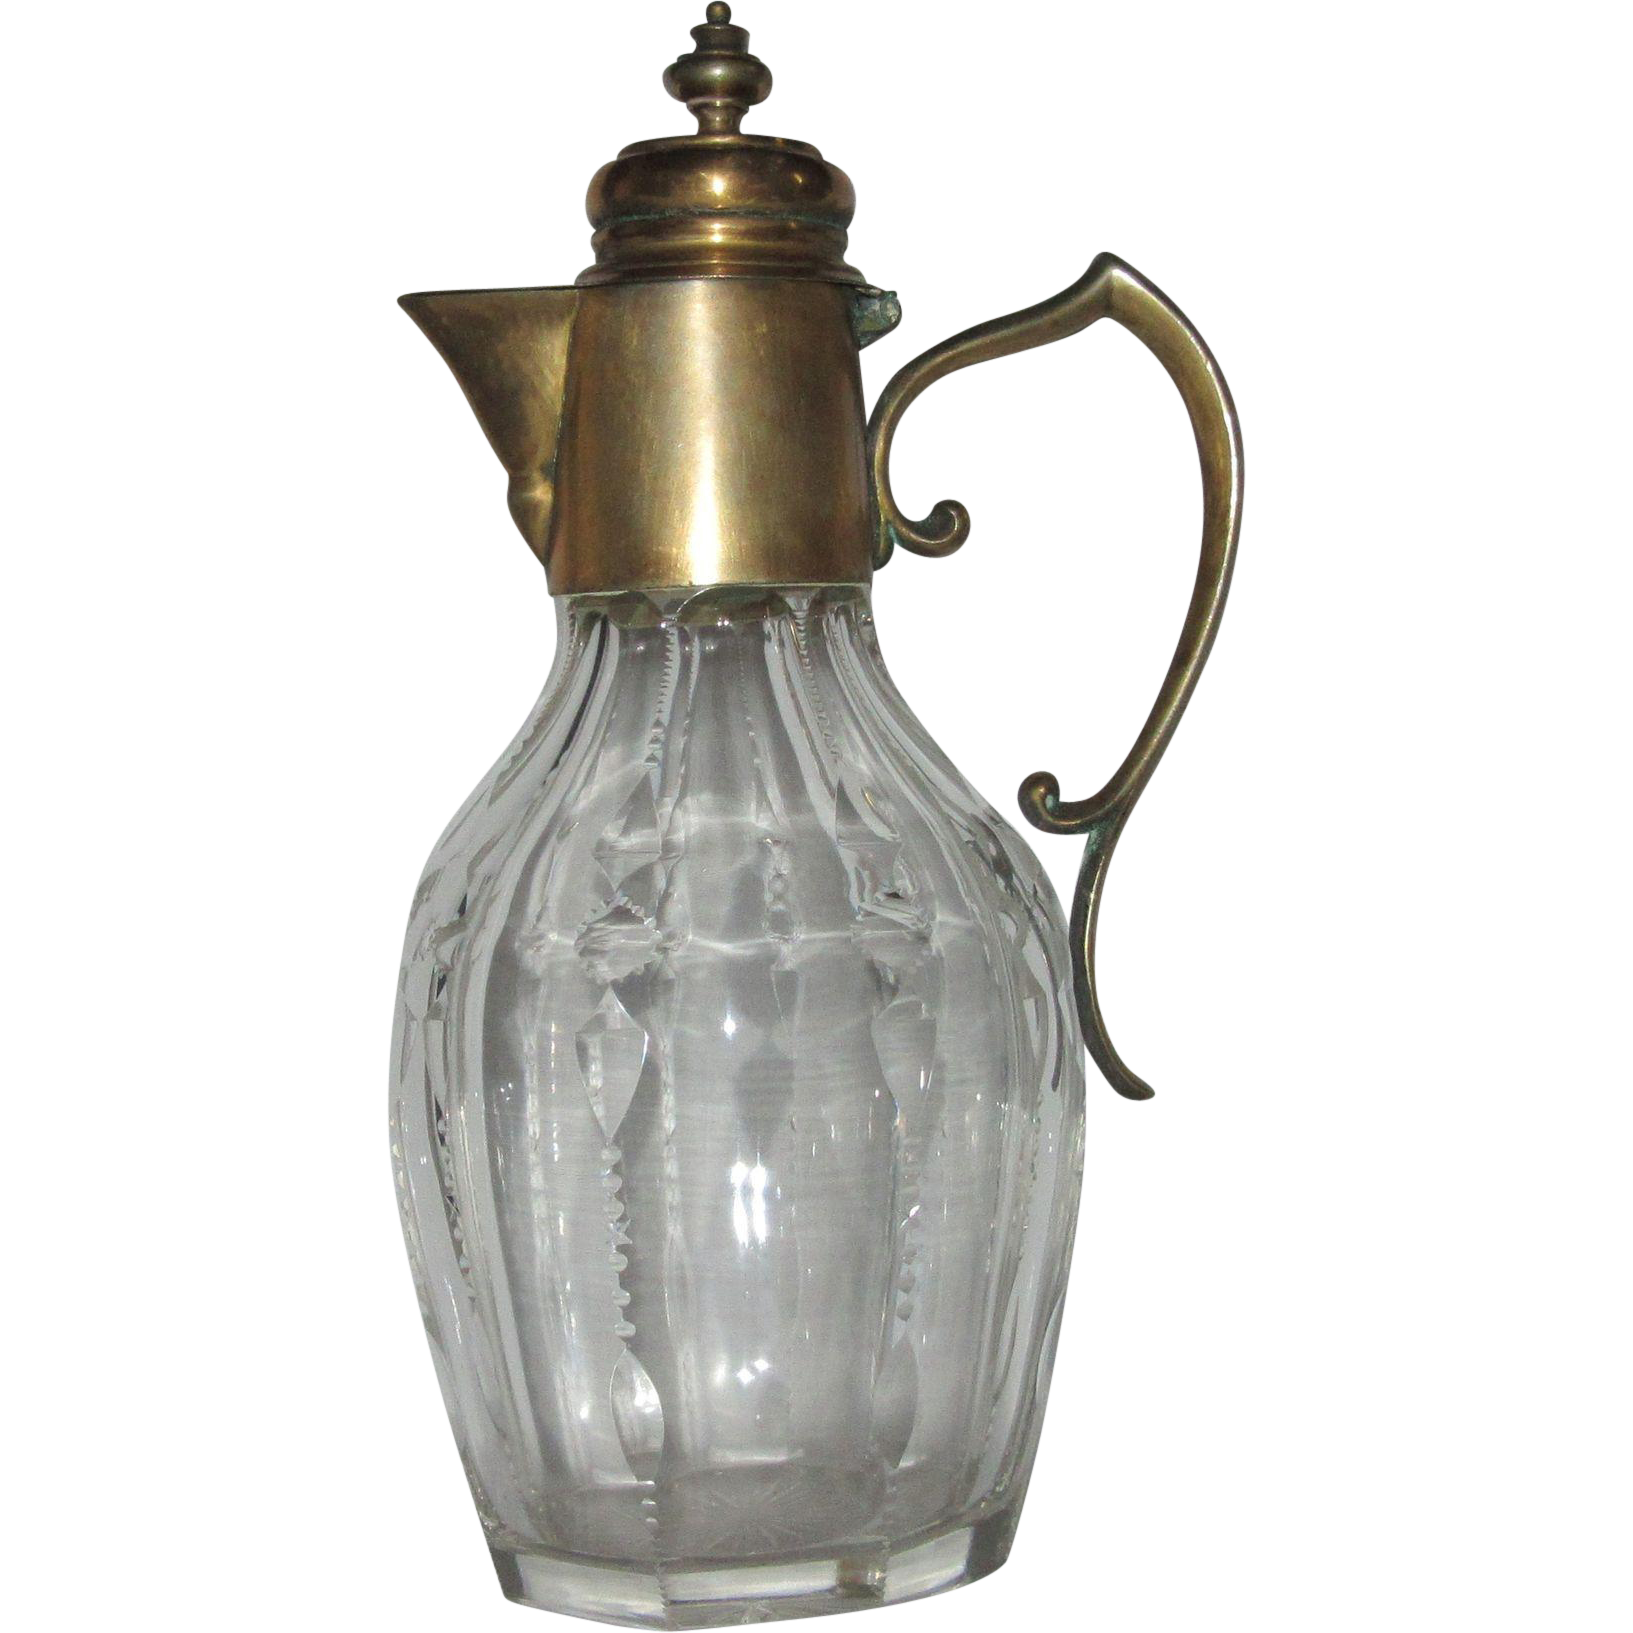 Antique Cut Crystal Claret Jug or Decanter with Brass Mount